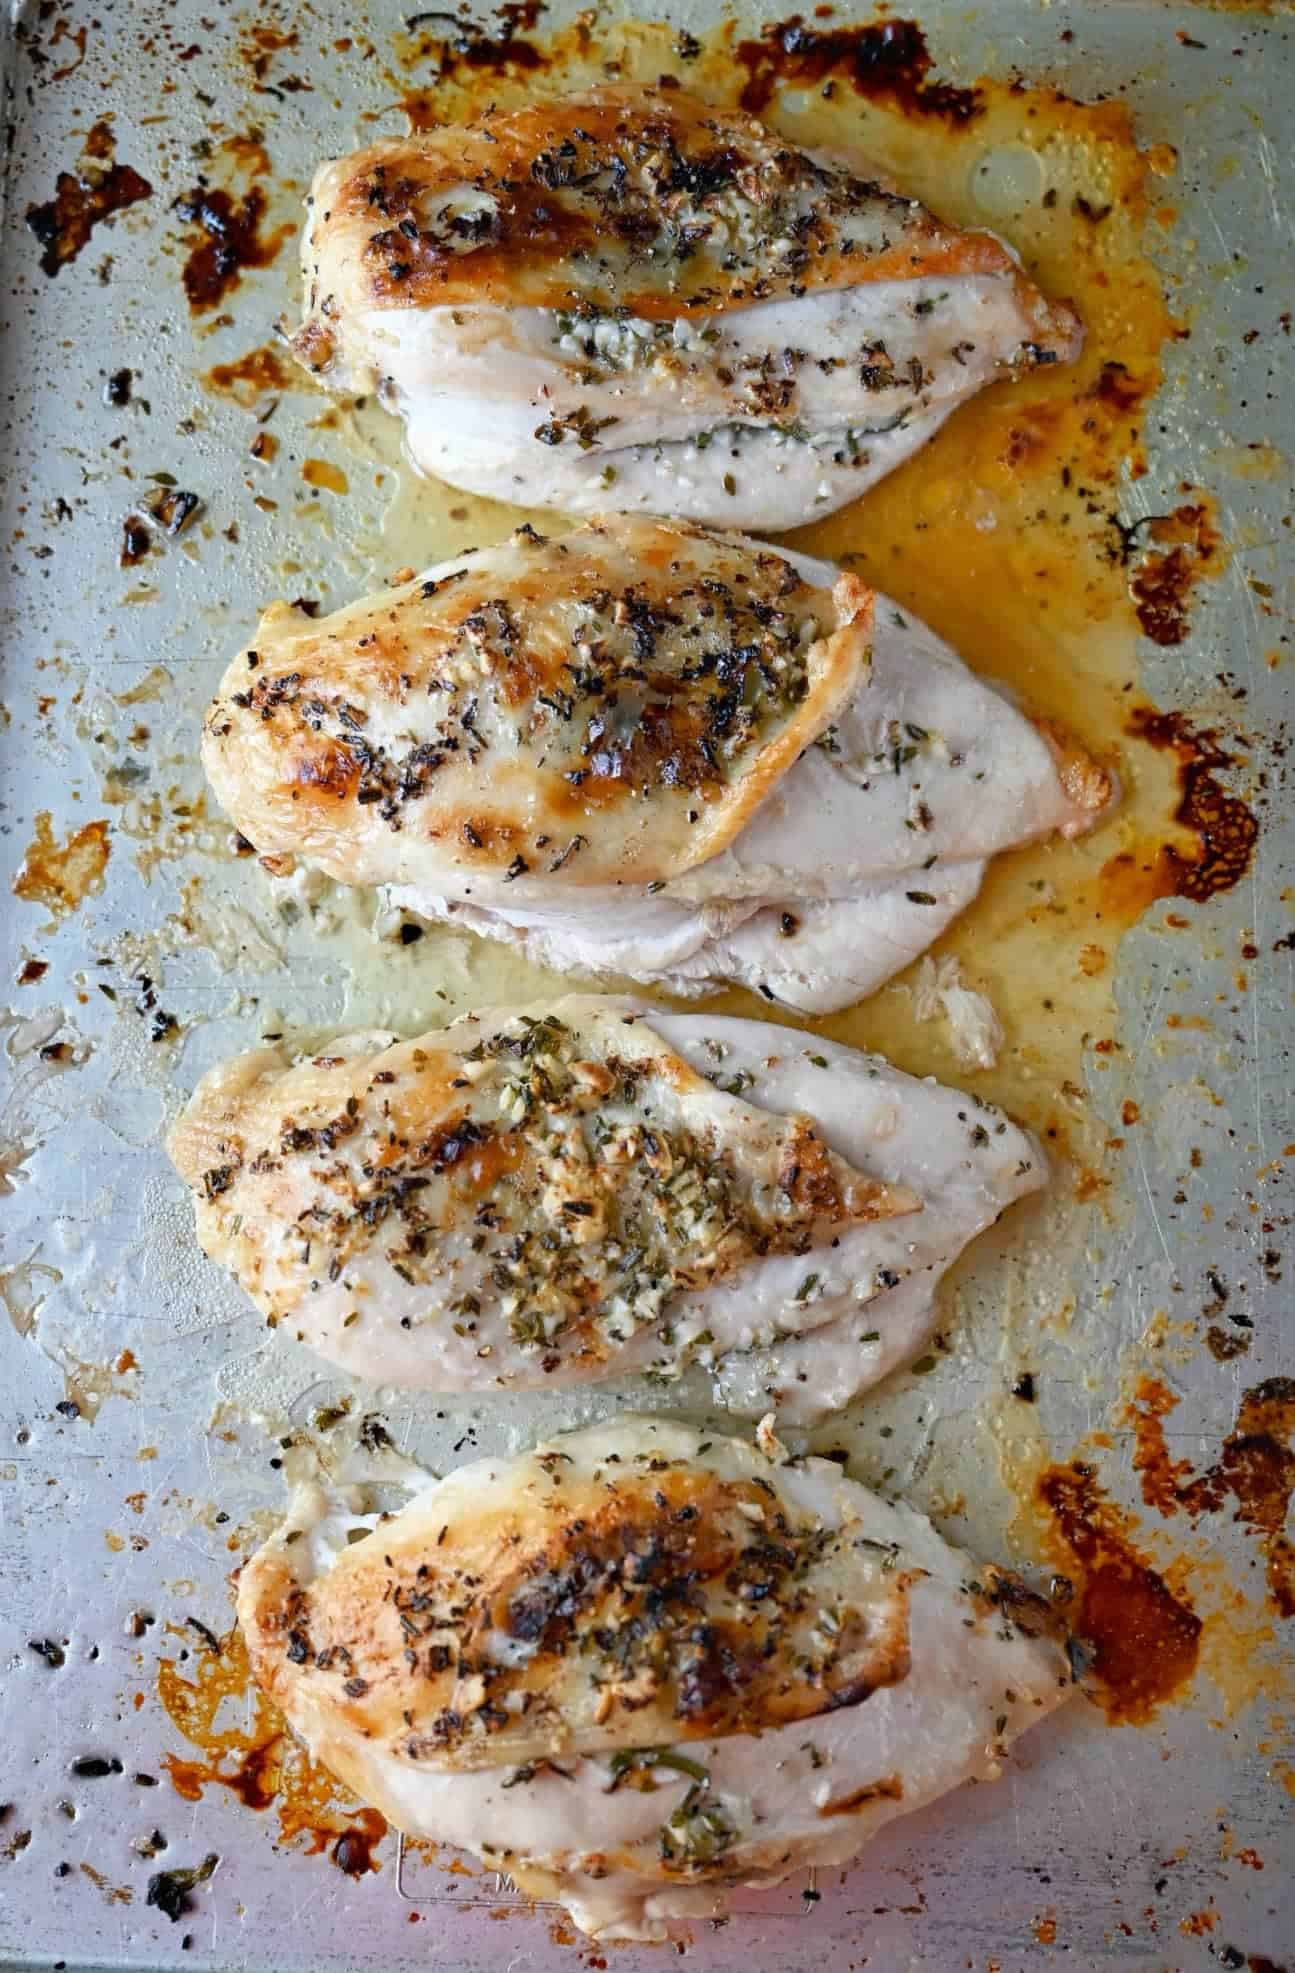 Four roasted chicken breasts on a baking sheet.